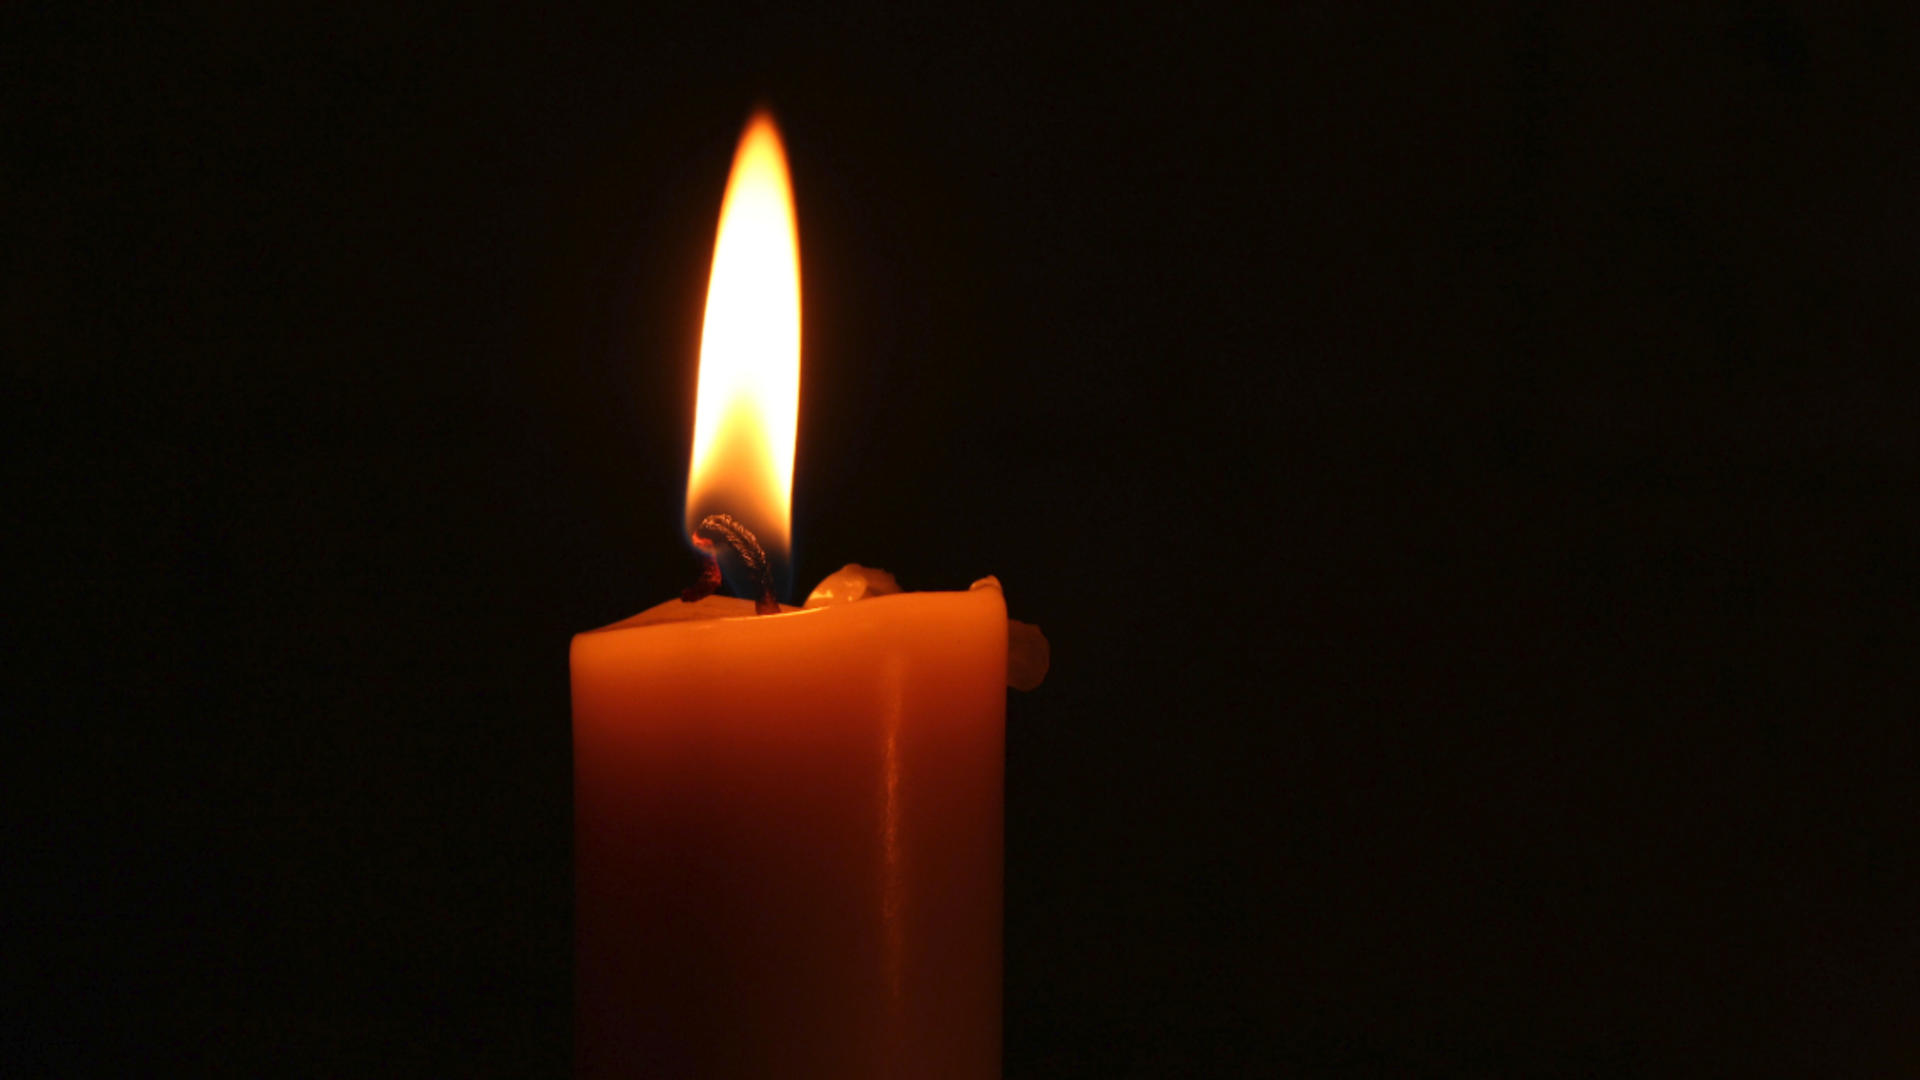 Red candle in front of black background